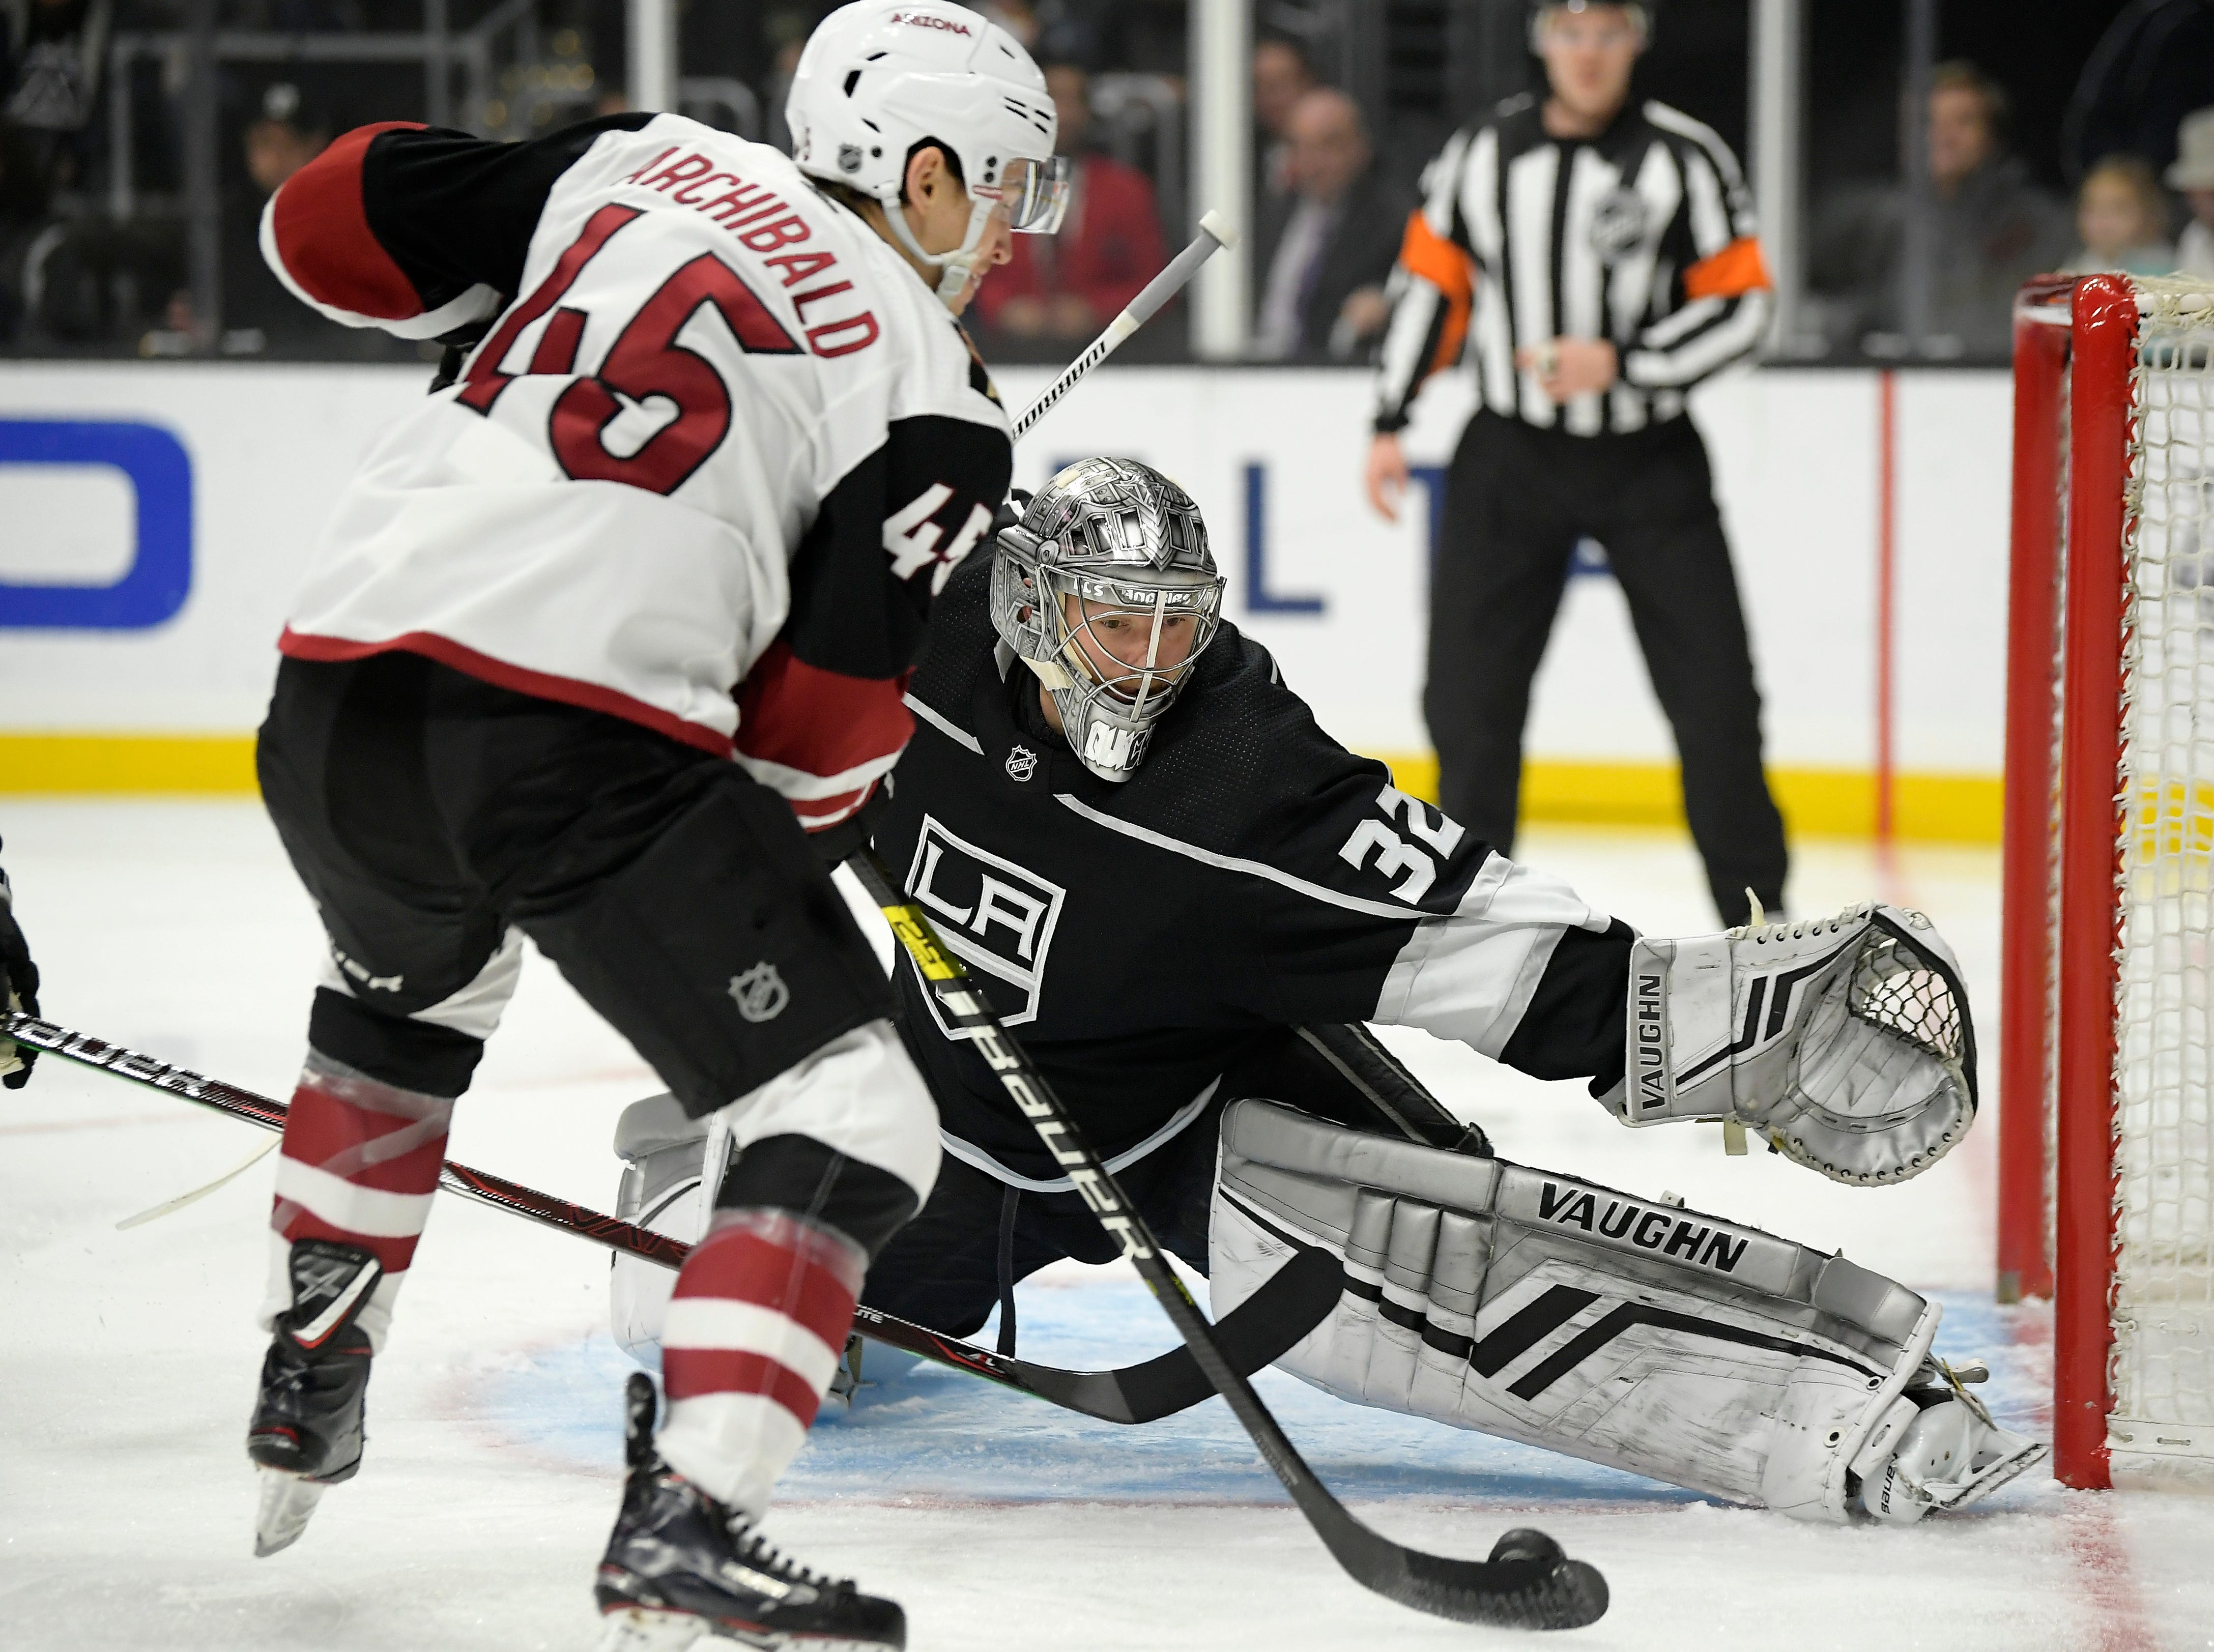 Arizona Coyotes right wing Josh Archibald, left, tries to score on Los Angeles Kings goaltender Jonathan Quick during the first period of an NHL hockey game Thursday, Dec. 27, 2018, in Los Angeles. (AP Photo/Mark J. Terrill)